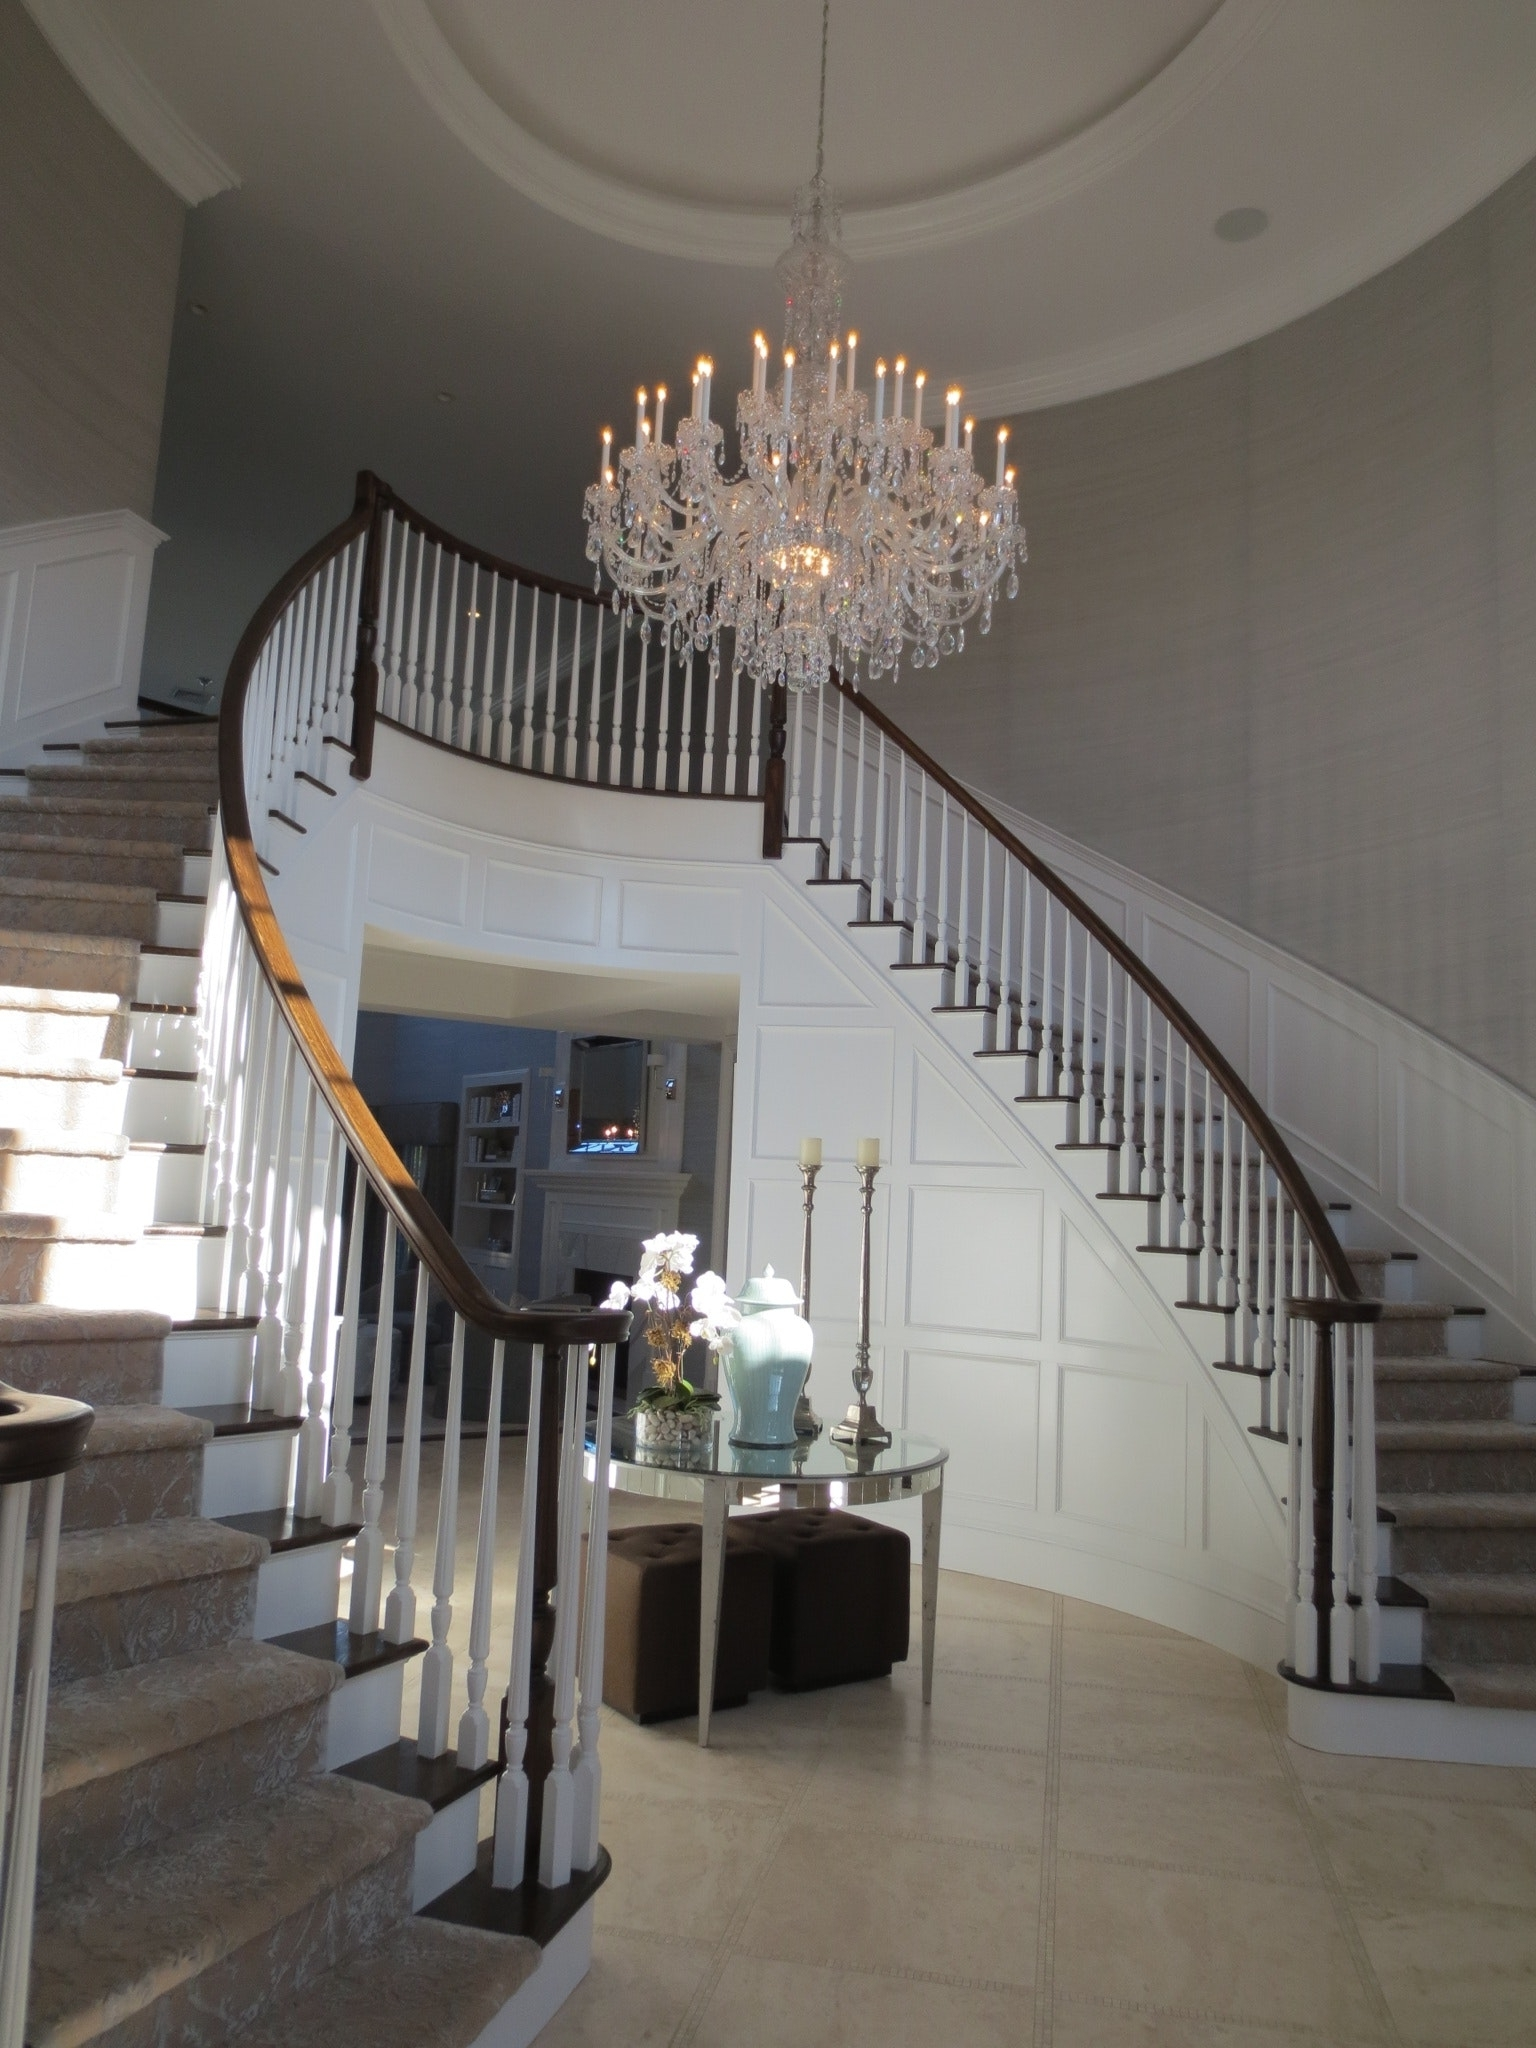 Compare S On Indoor Staircase Lighting Ping Image With Outstanding Pertaining To Well Known Stairway Chandelier (View 7 of 15)